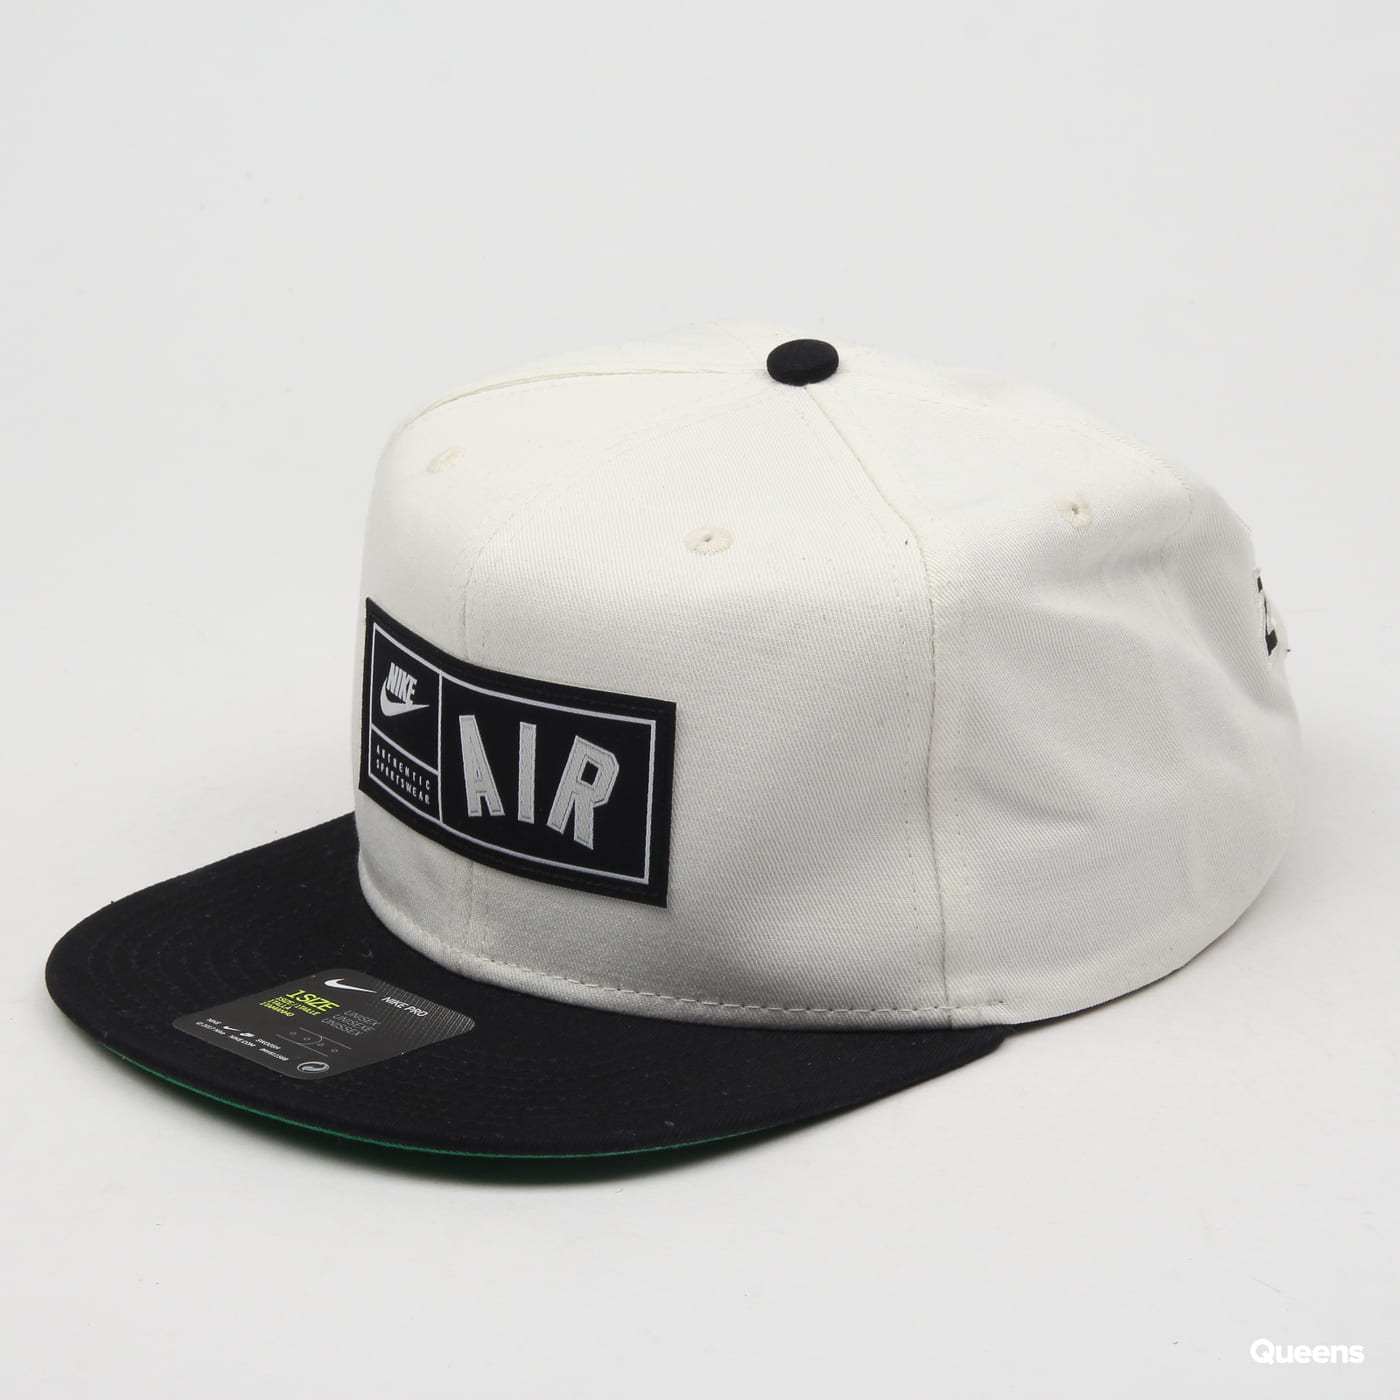 9167f573e Nike U NSW Pro Cap Nike Air white / black / green